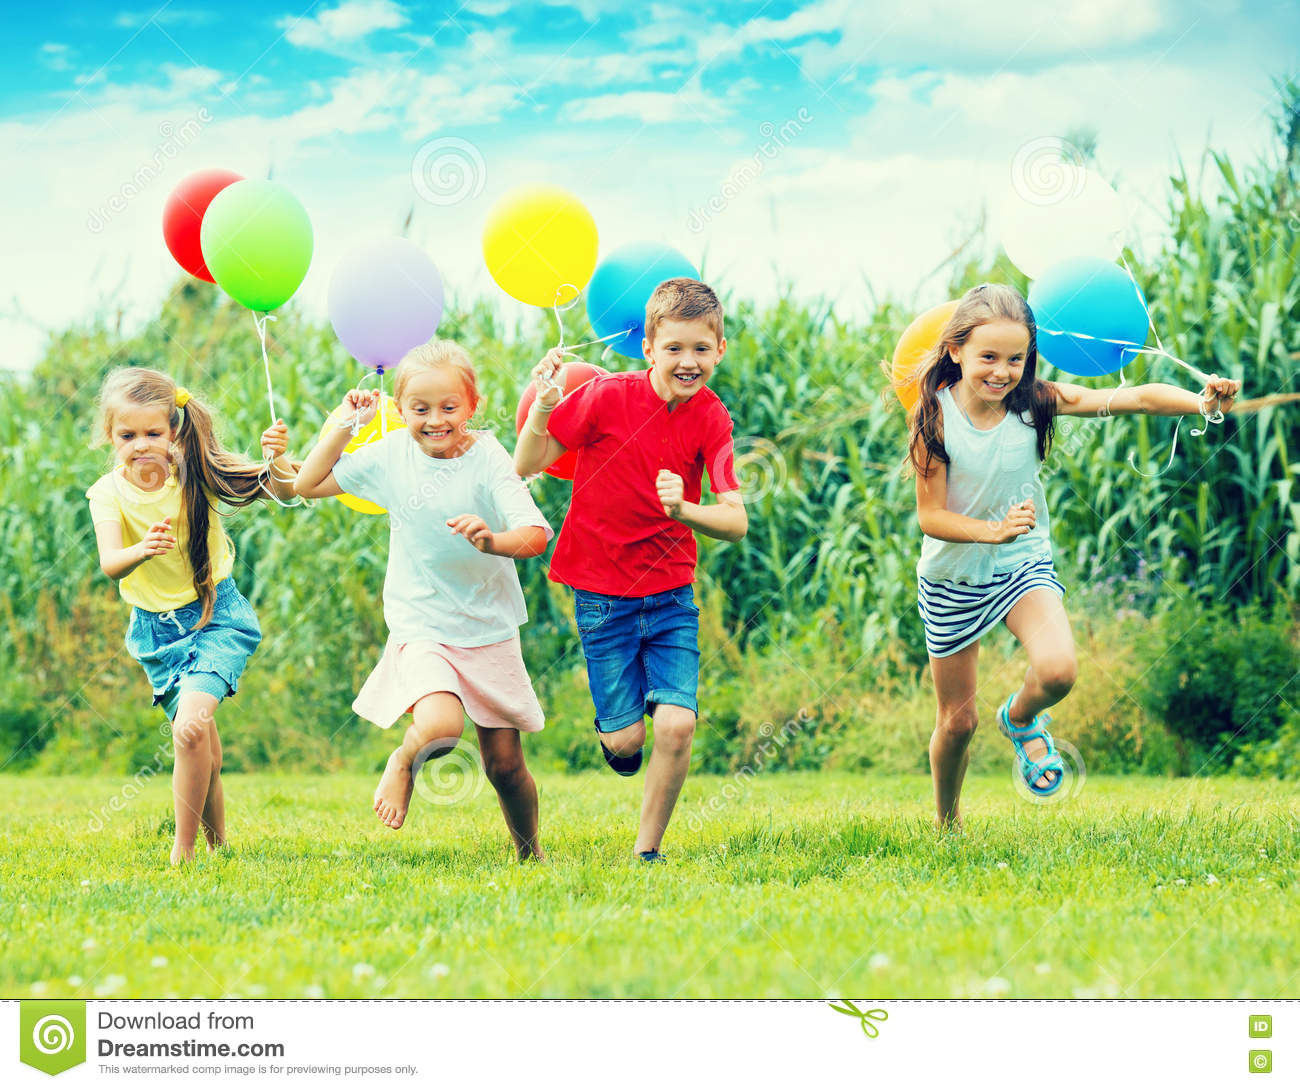 Image result for children running and playing